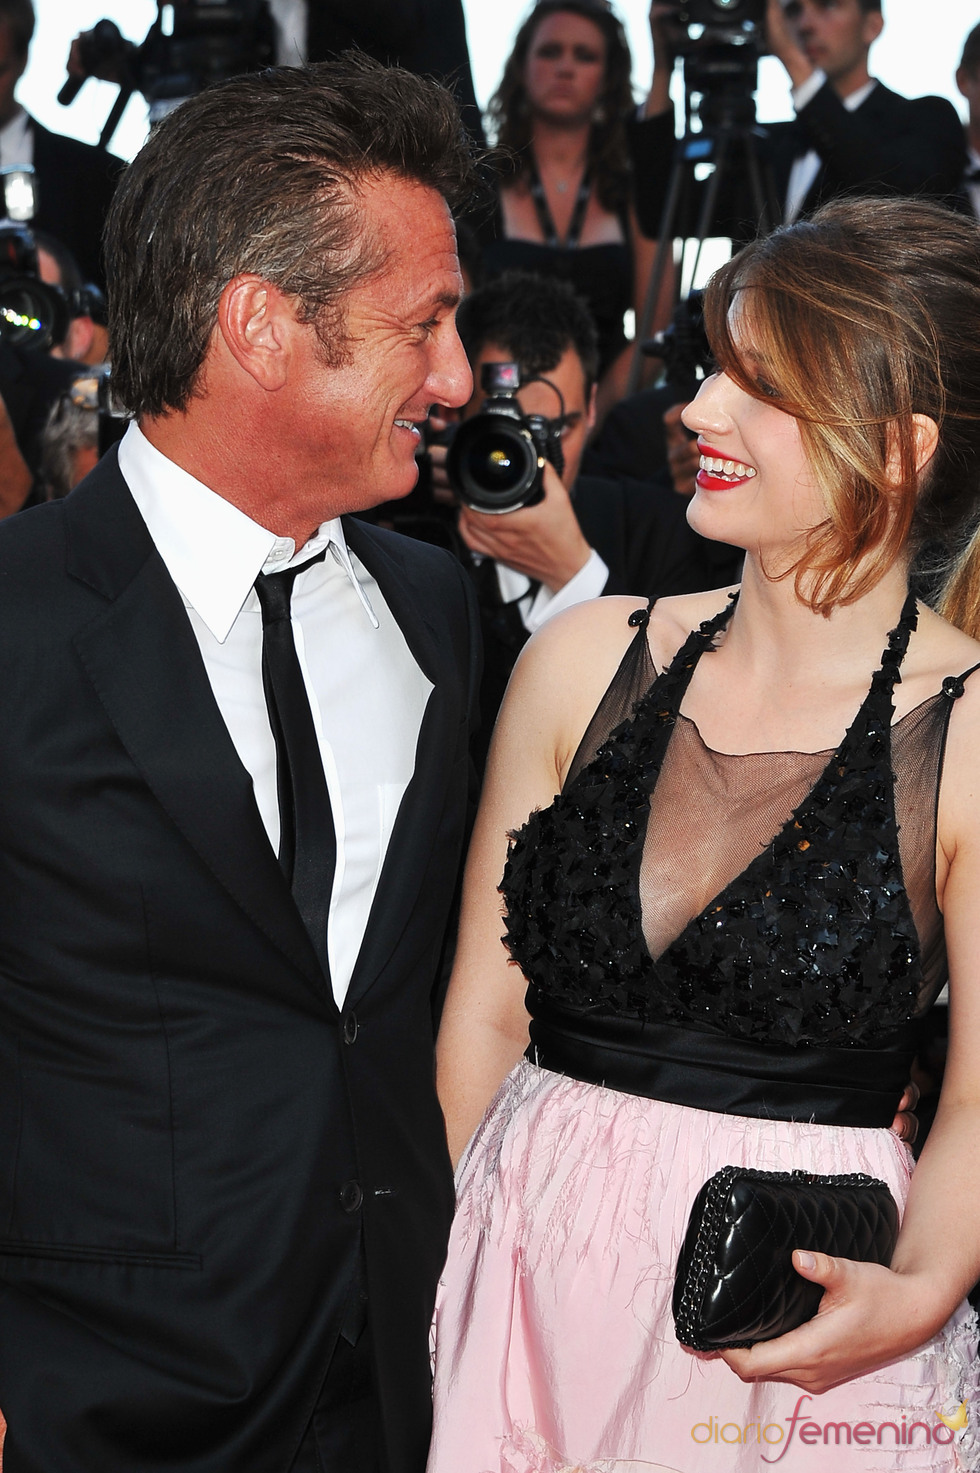 Sean Penn y Eve Hewson en la premier de 'This must be the place' en Cannes